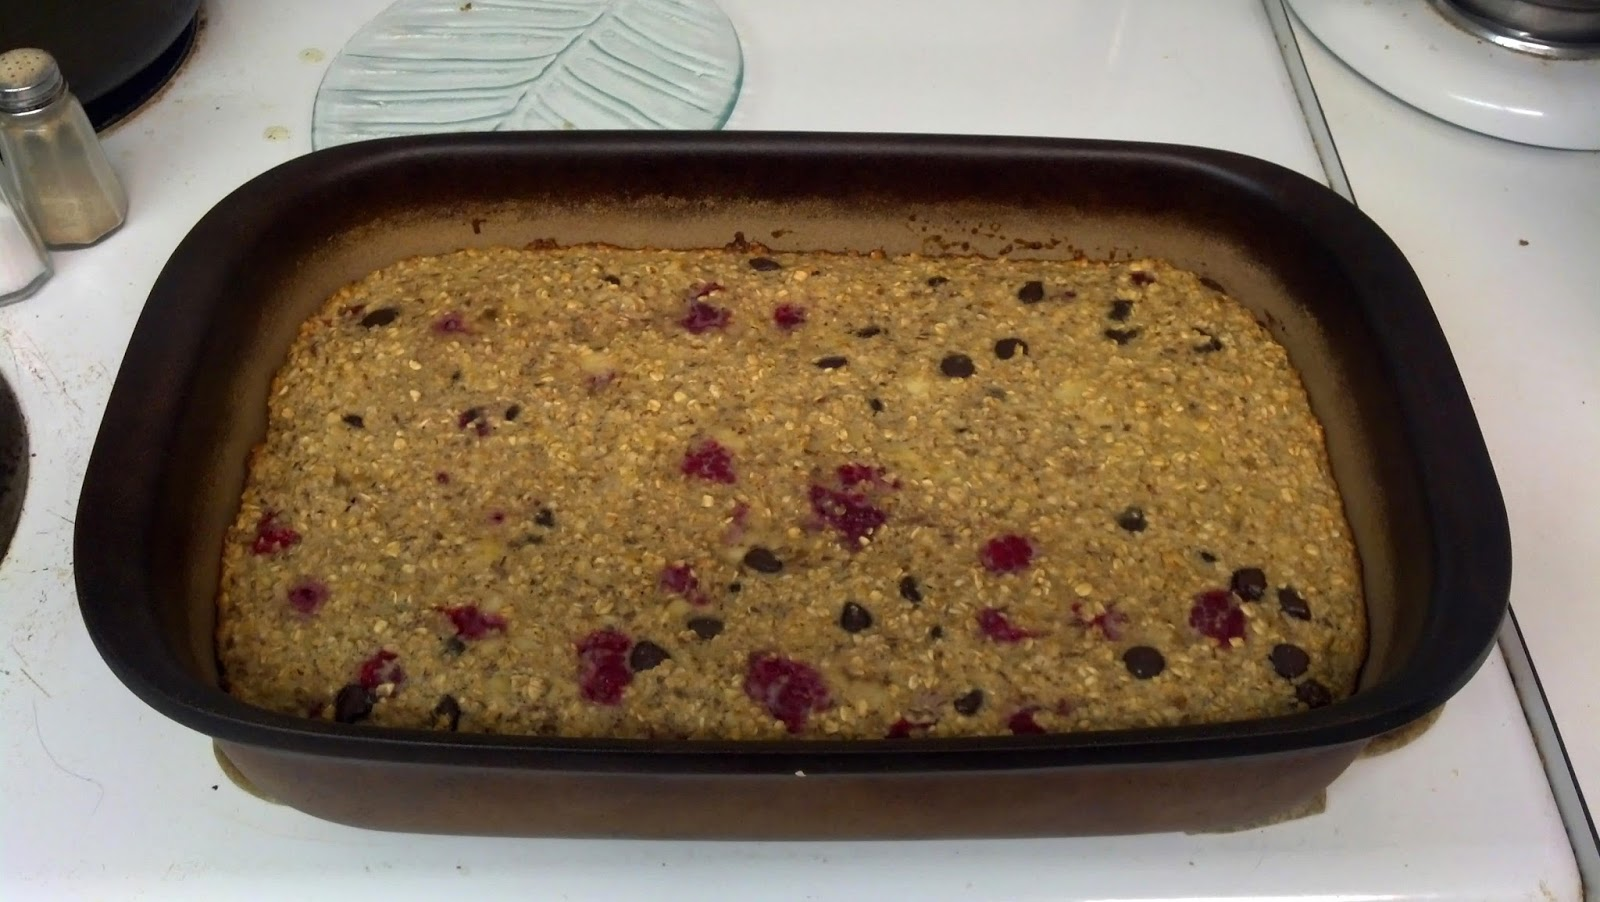 #Raspberry #chocolate #walnut baked #oatmeal